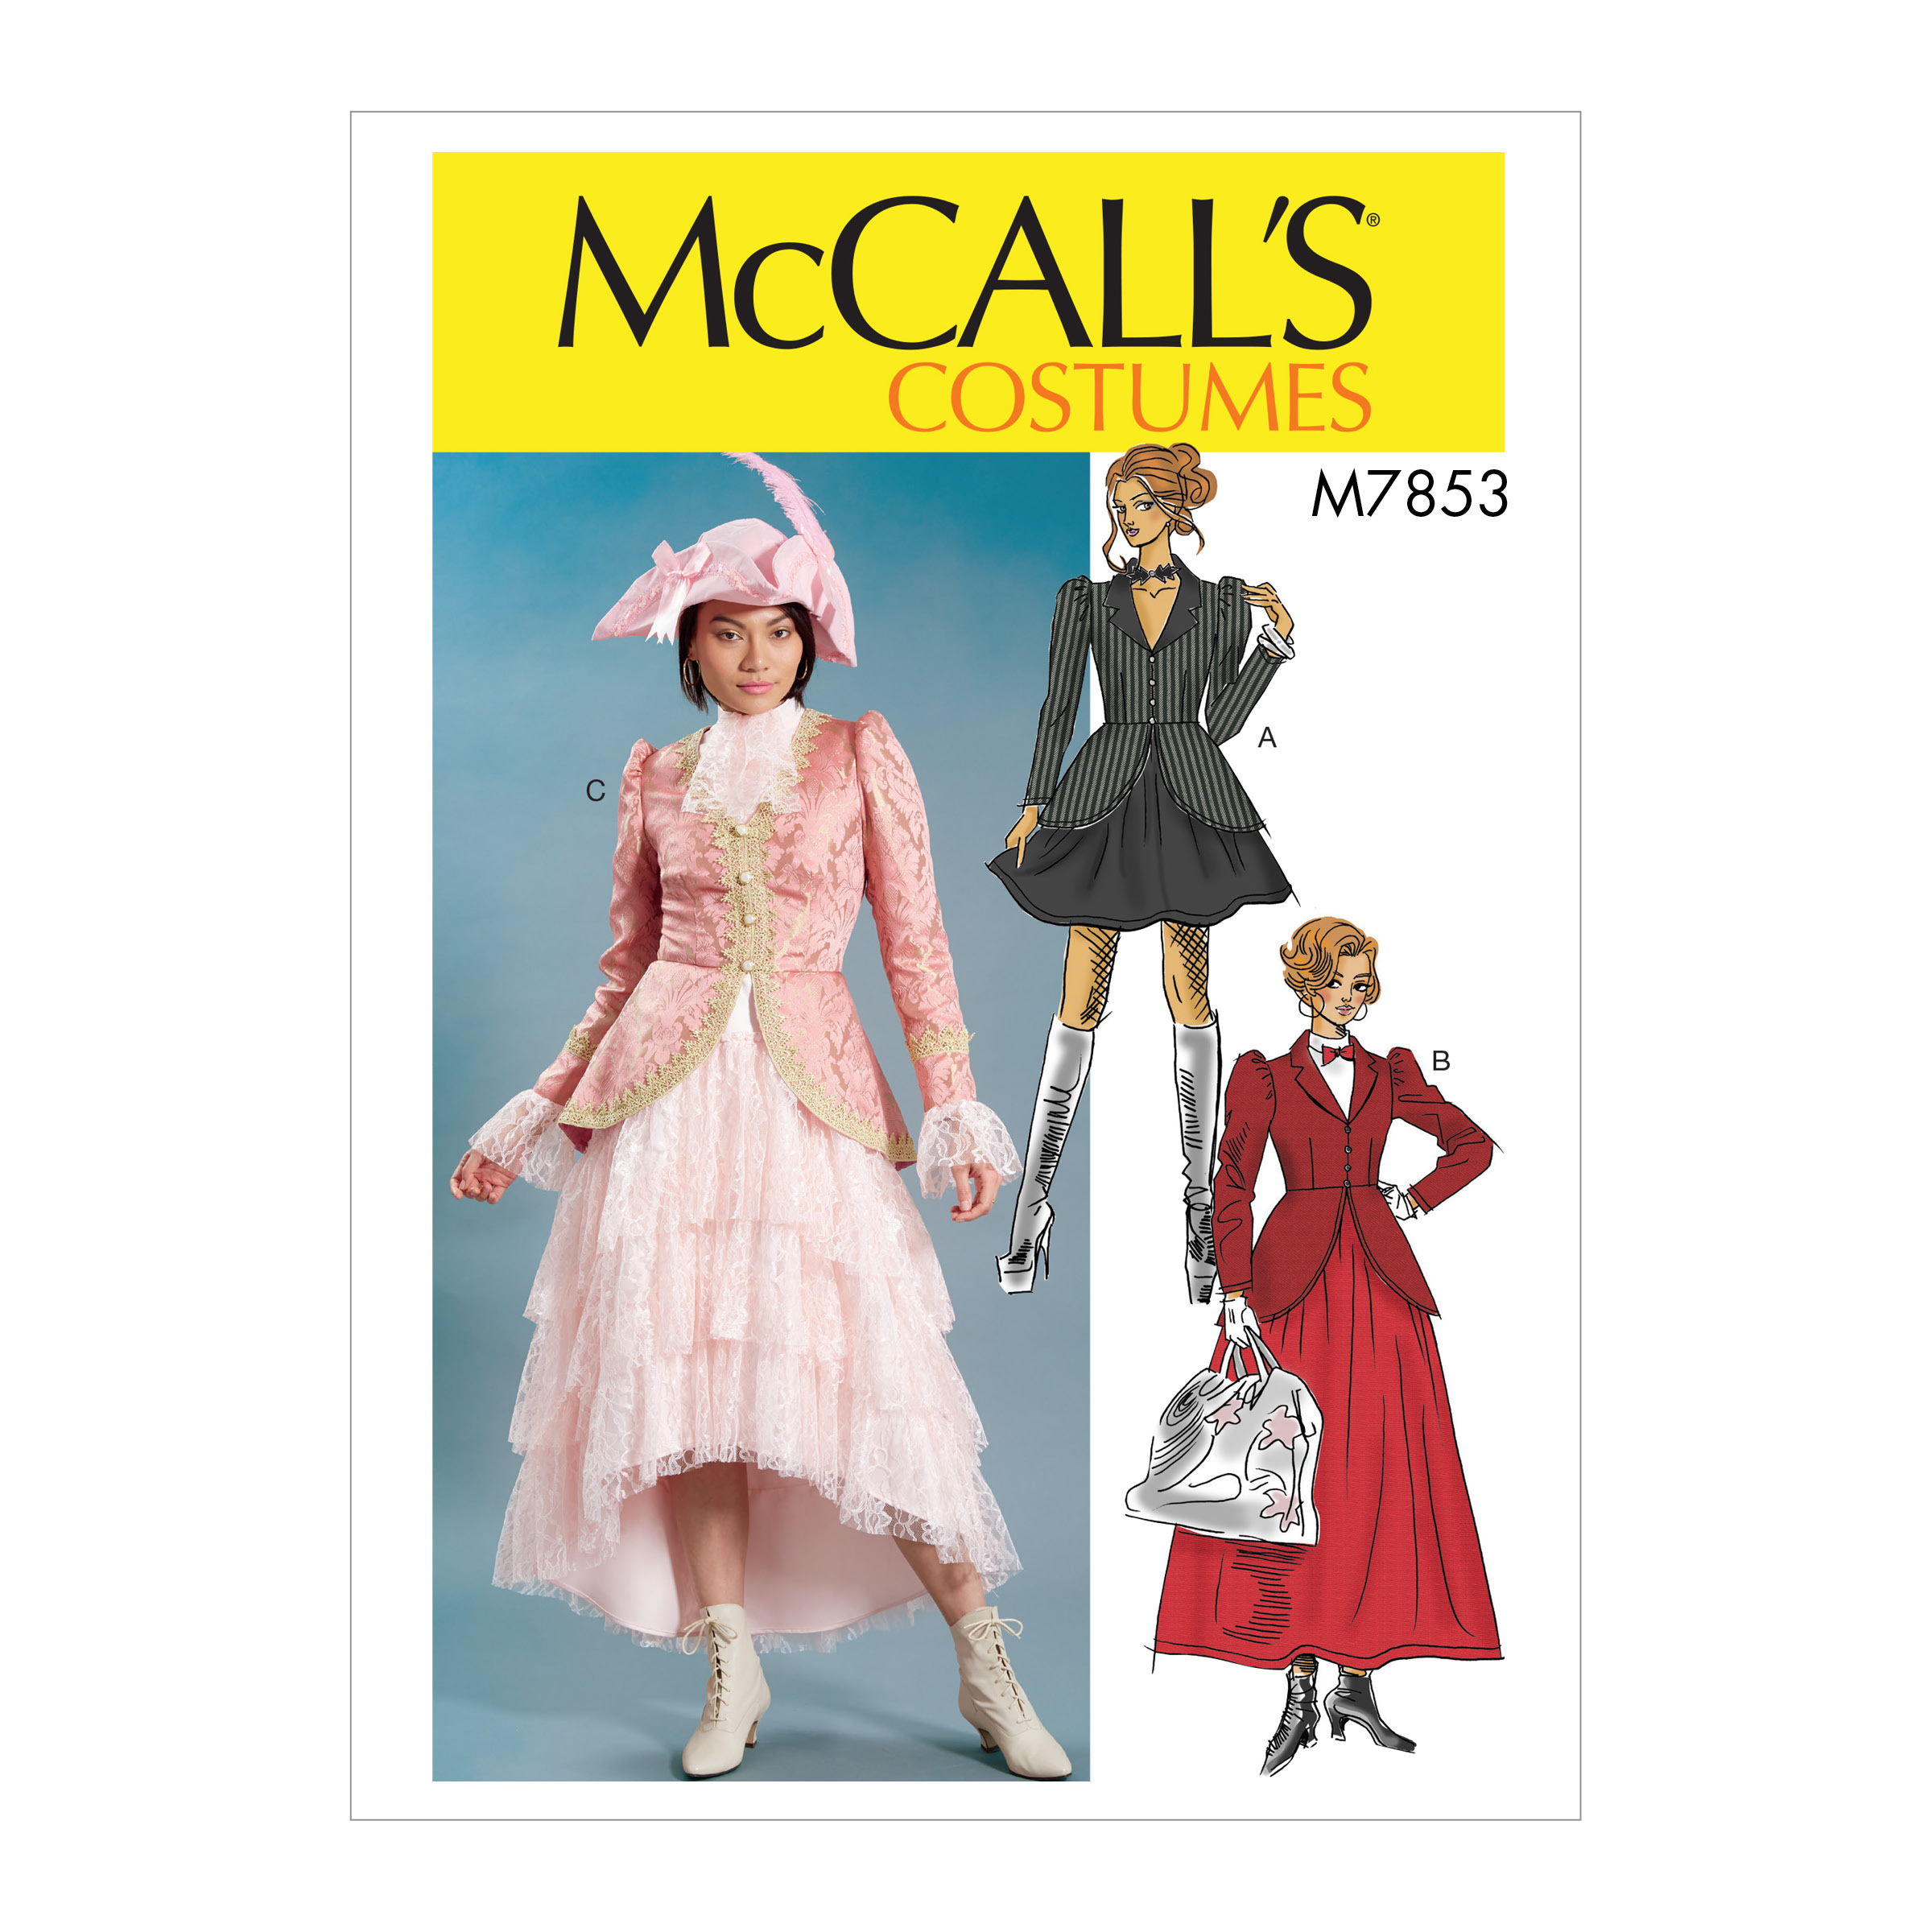 Titanic Fashion – 1st Class Women's Clothing McCalls M7853 Misses Costume Pattern E5 Sizes 14-22 $11.97 AT vintagedancer.com